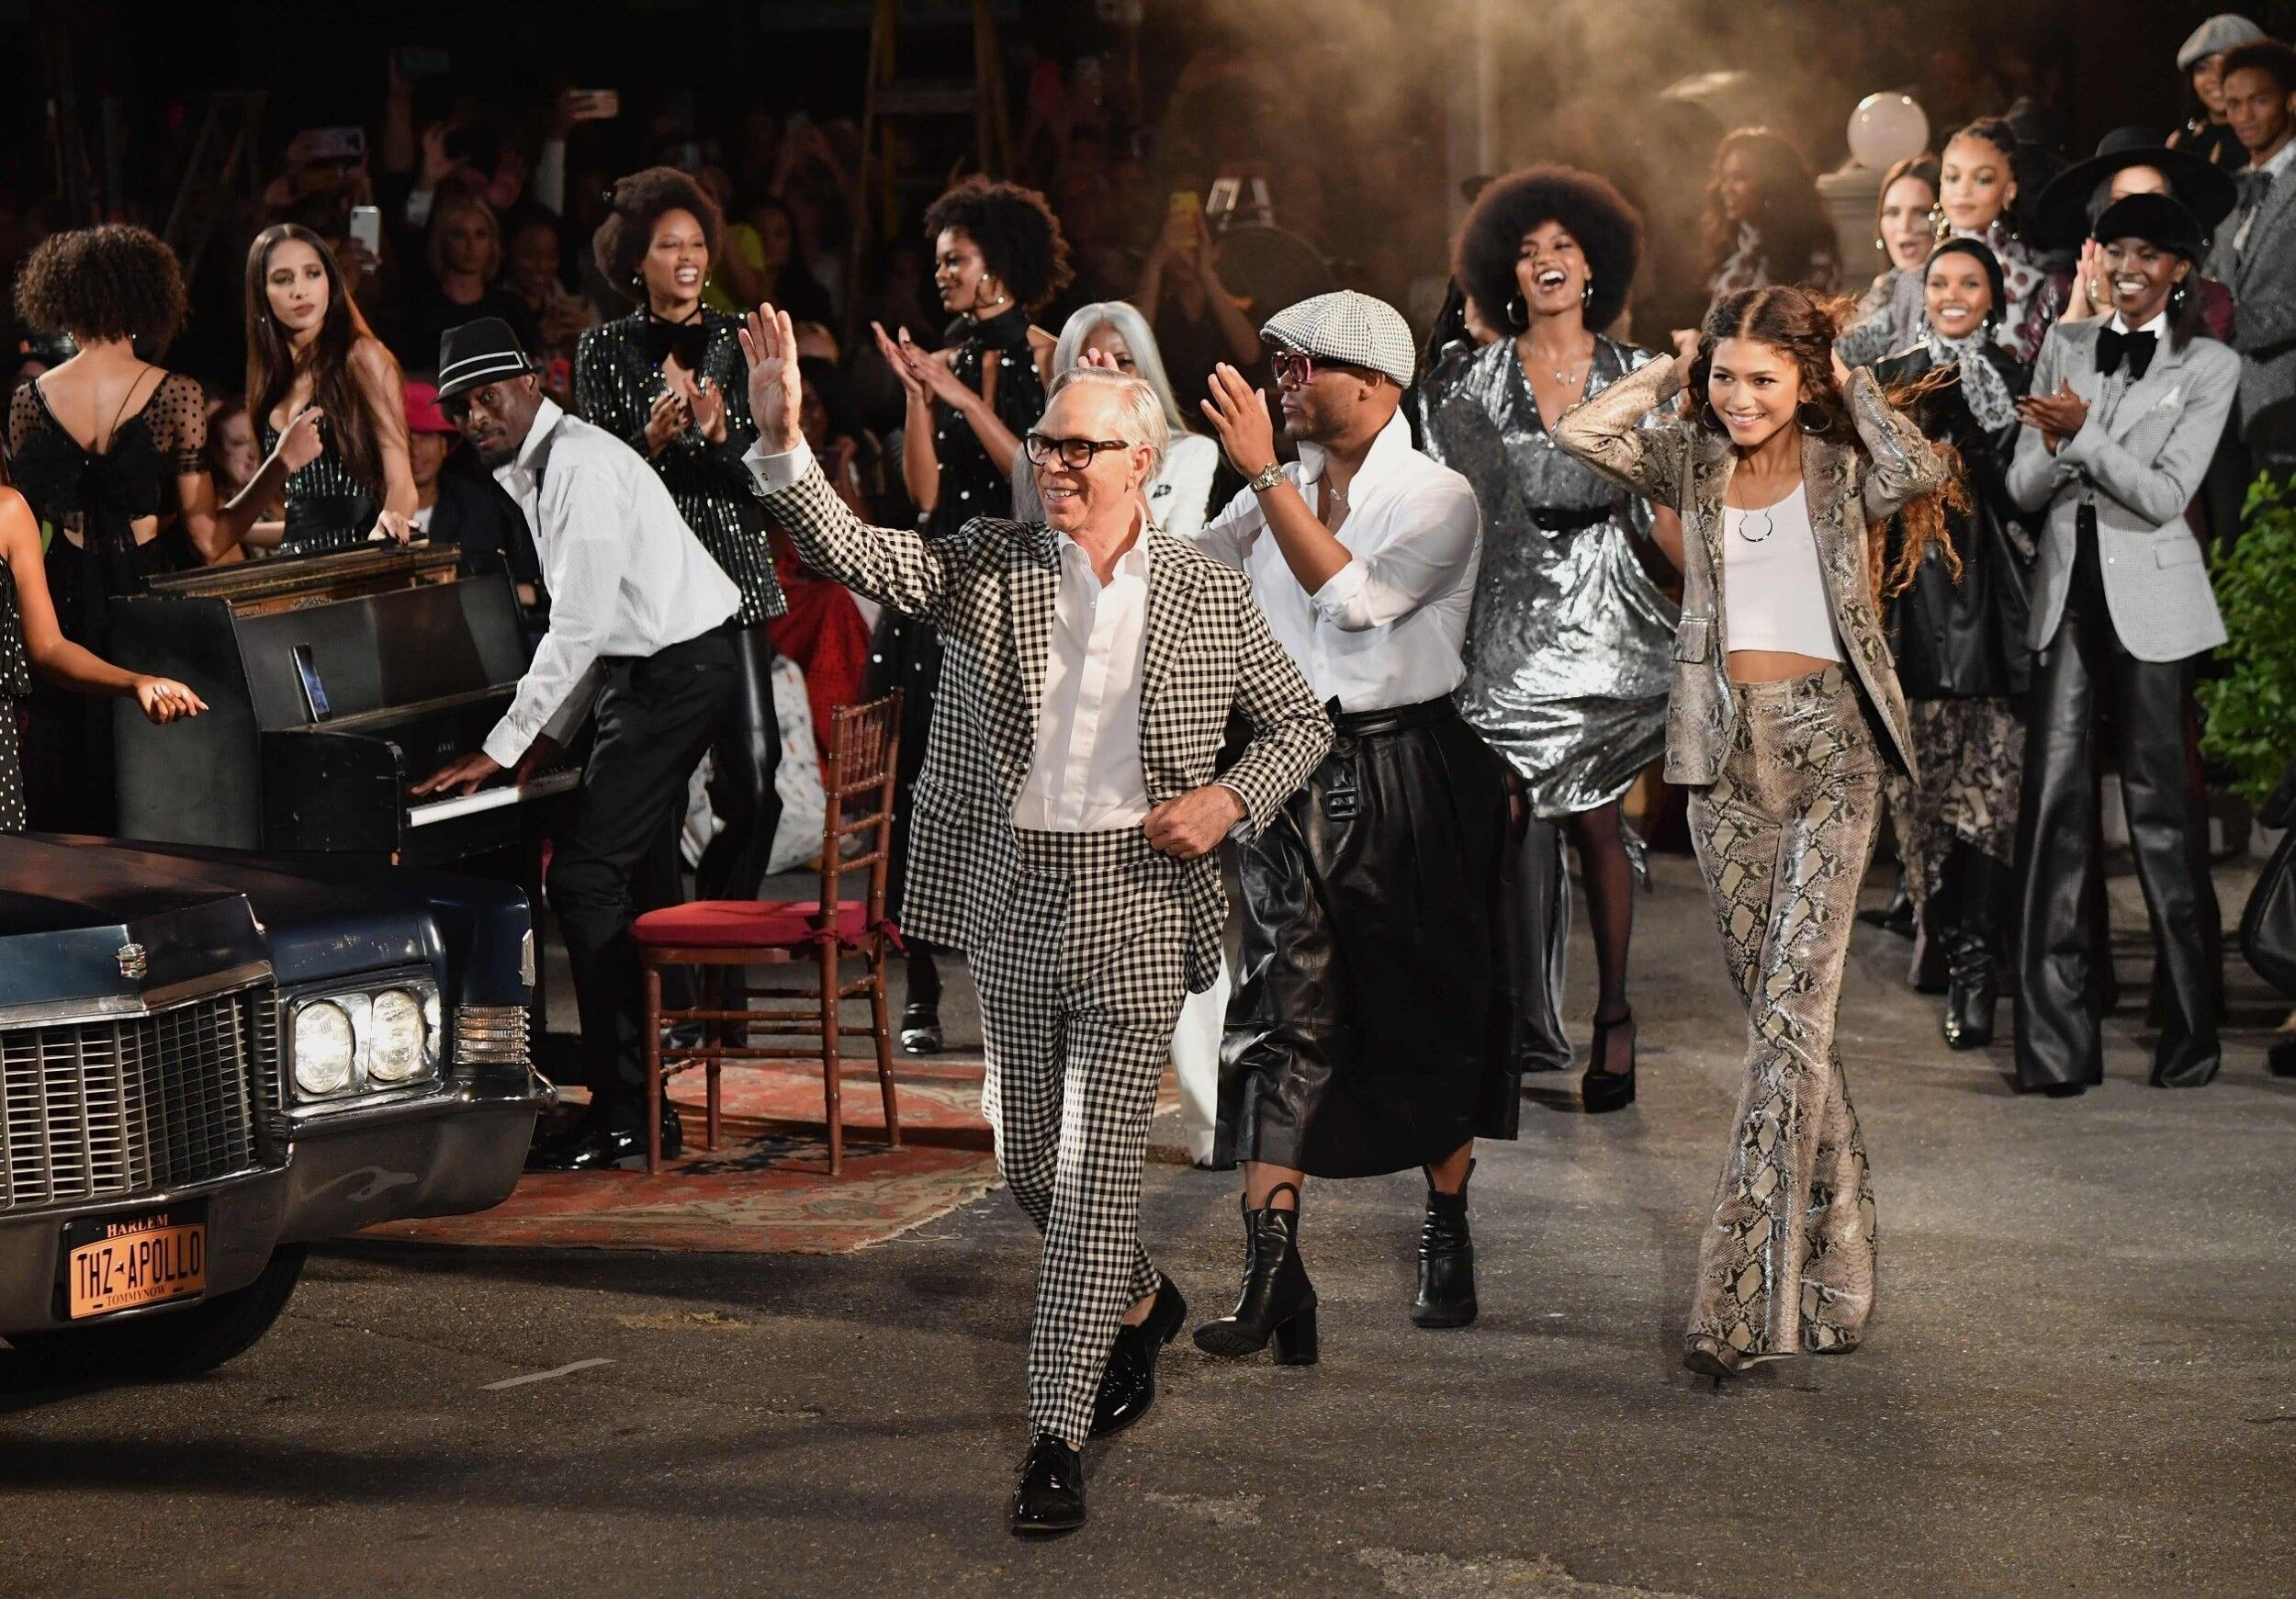 Tommy Hilfiger, Zendaya, and models at the SS20 show at the Apollo Theater in Harlem.